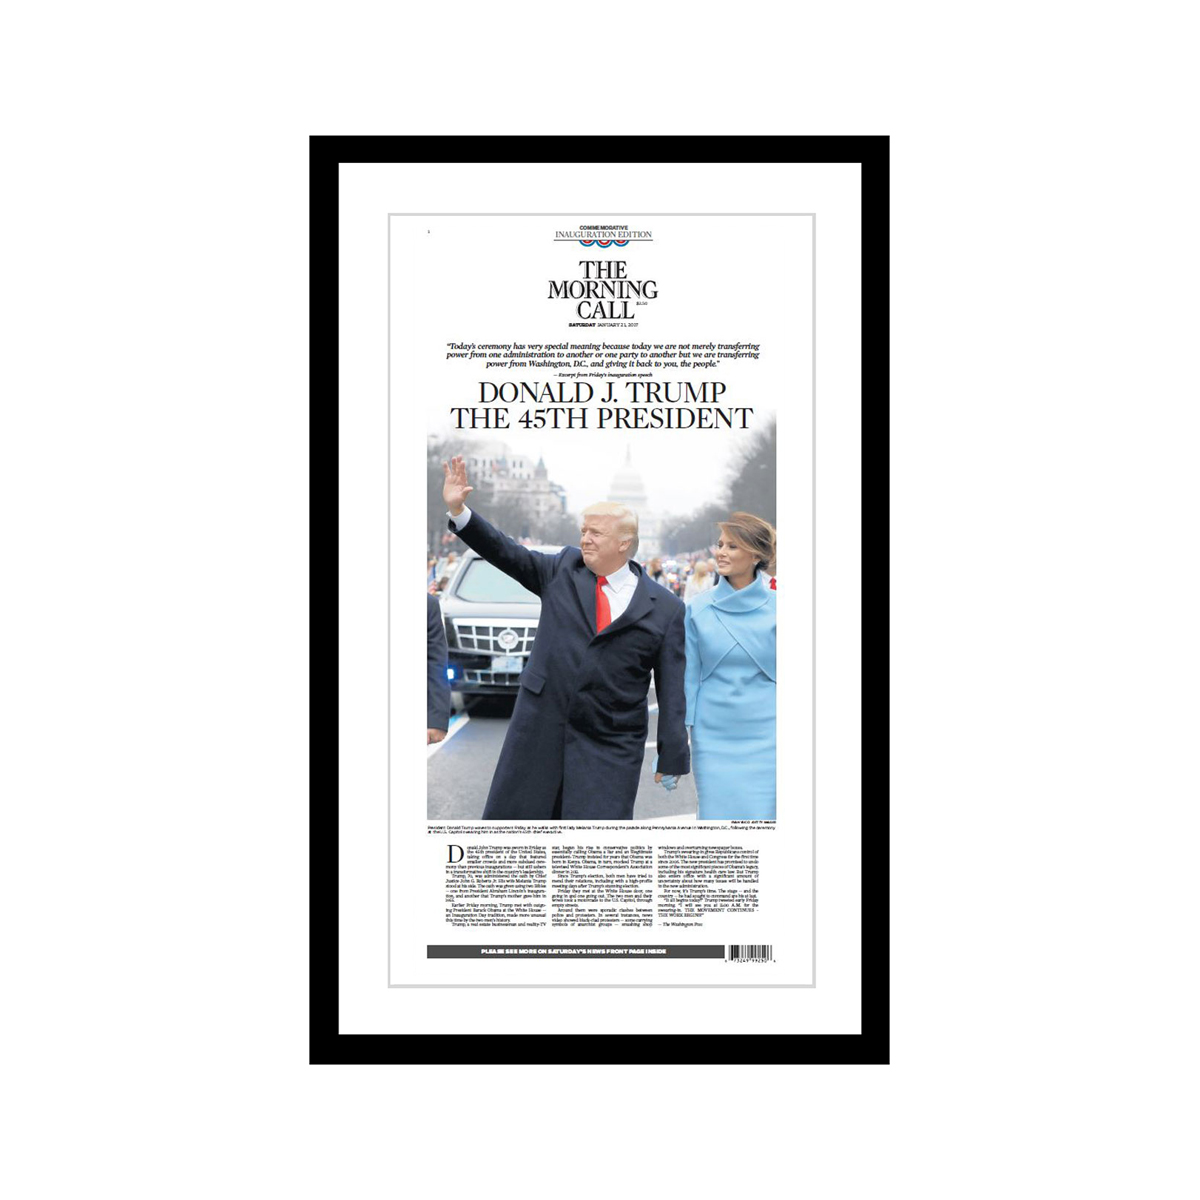 """Morning Call 1/21/2017 """"Donald J. Trump, The 45th President"""" Commemorative Inauguration Edition Poster"""